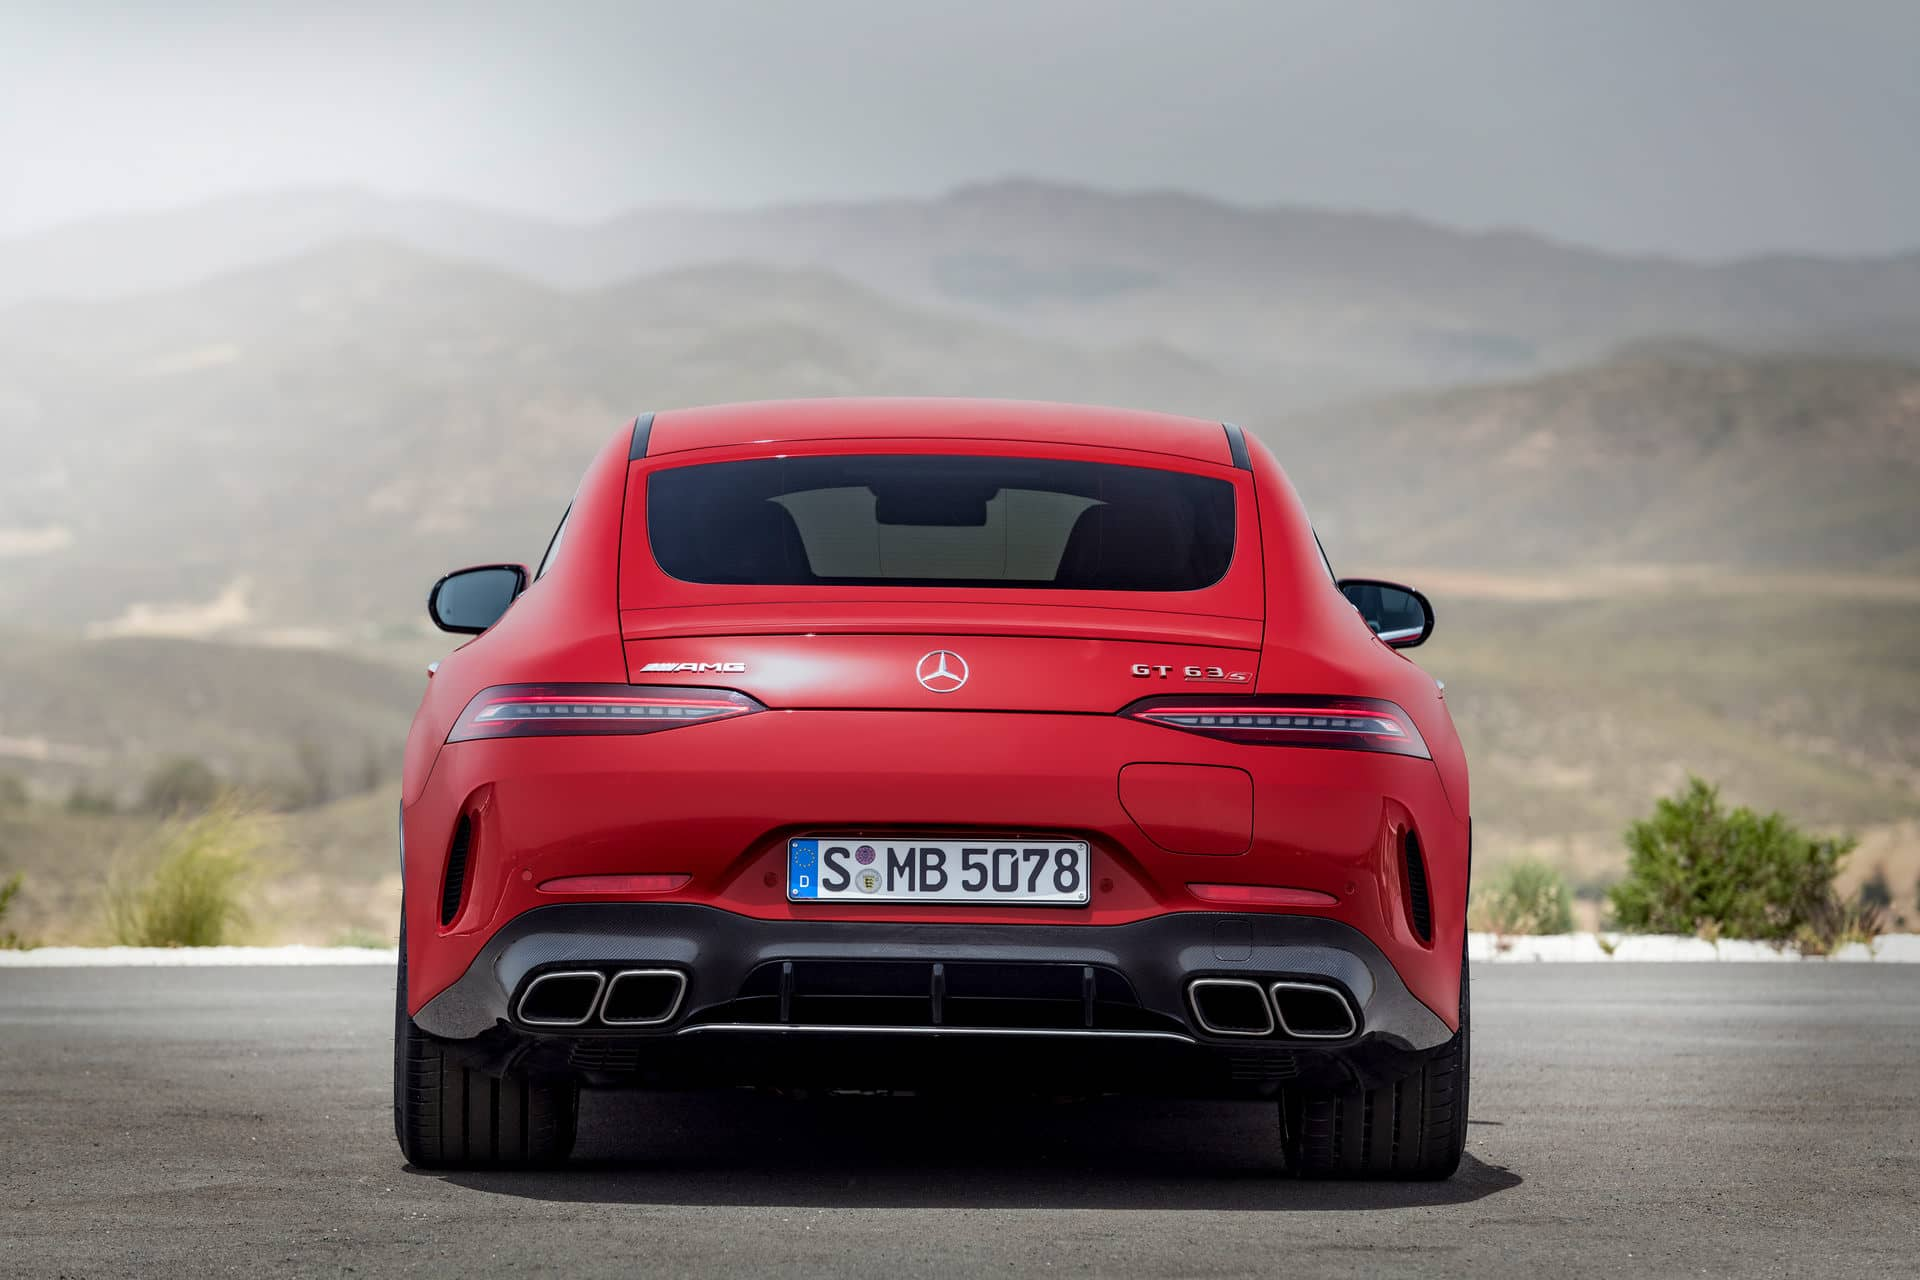 mercedes-amg gt 63 s eperformance (15)